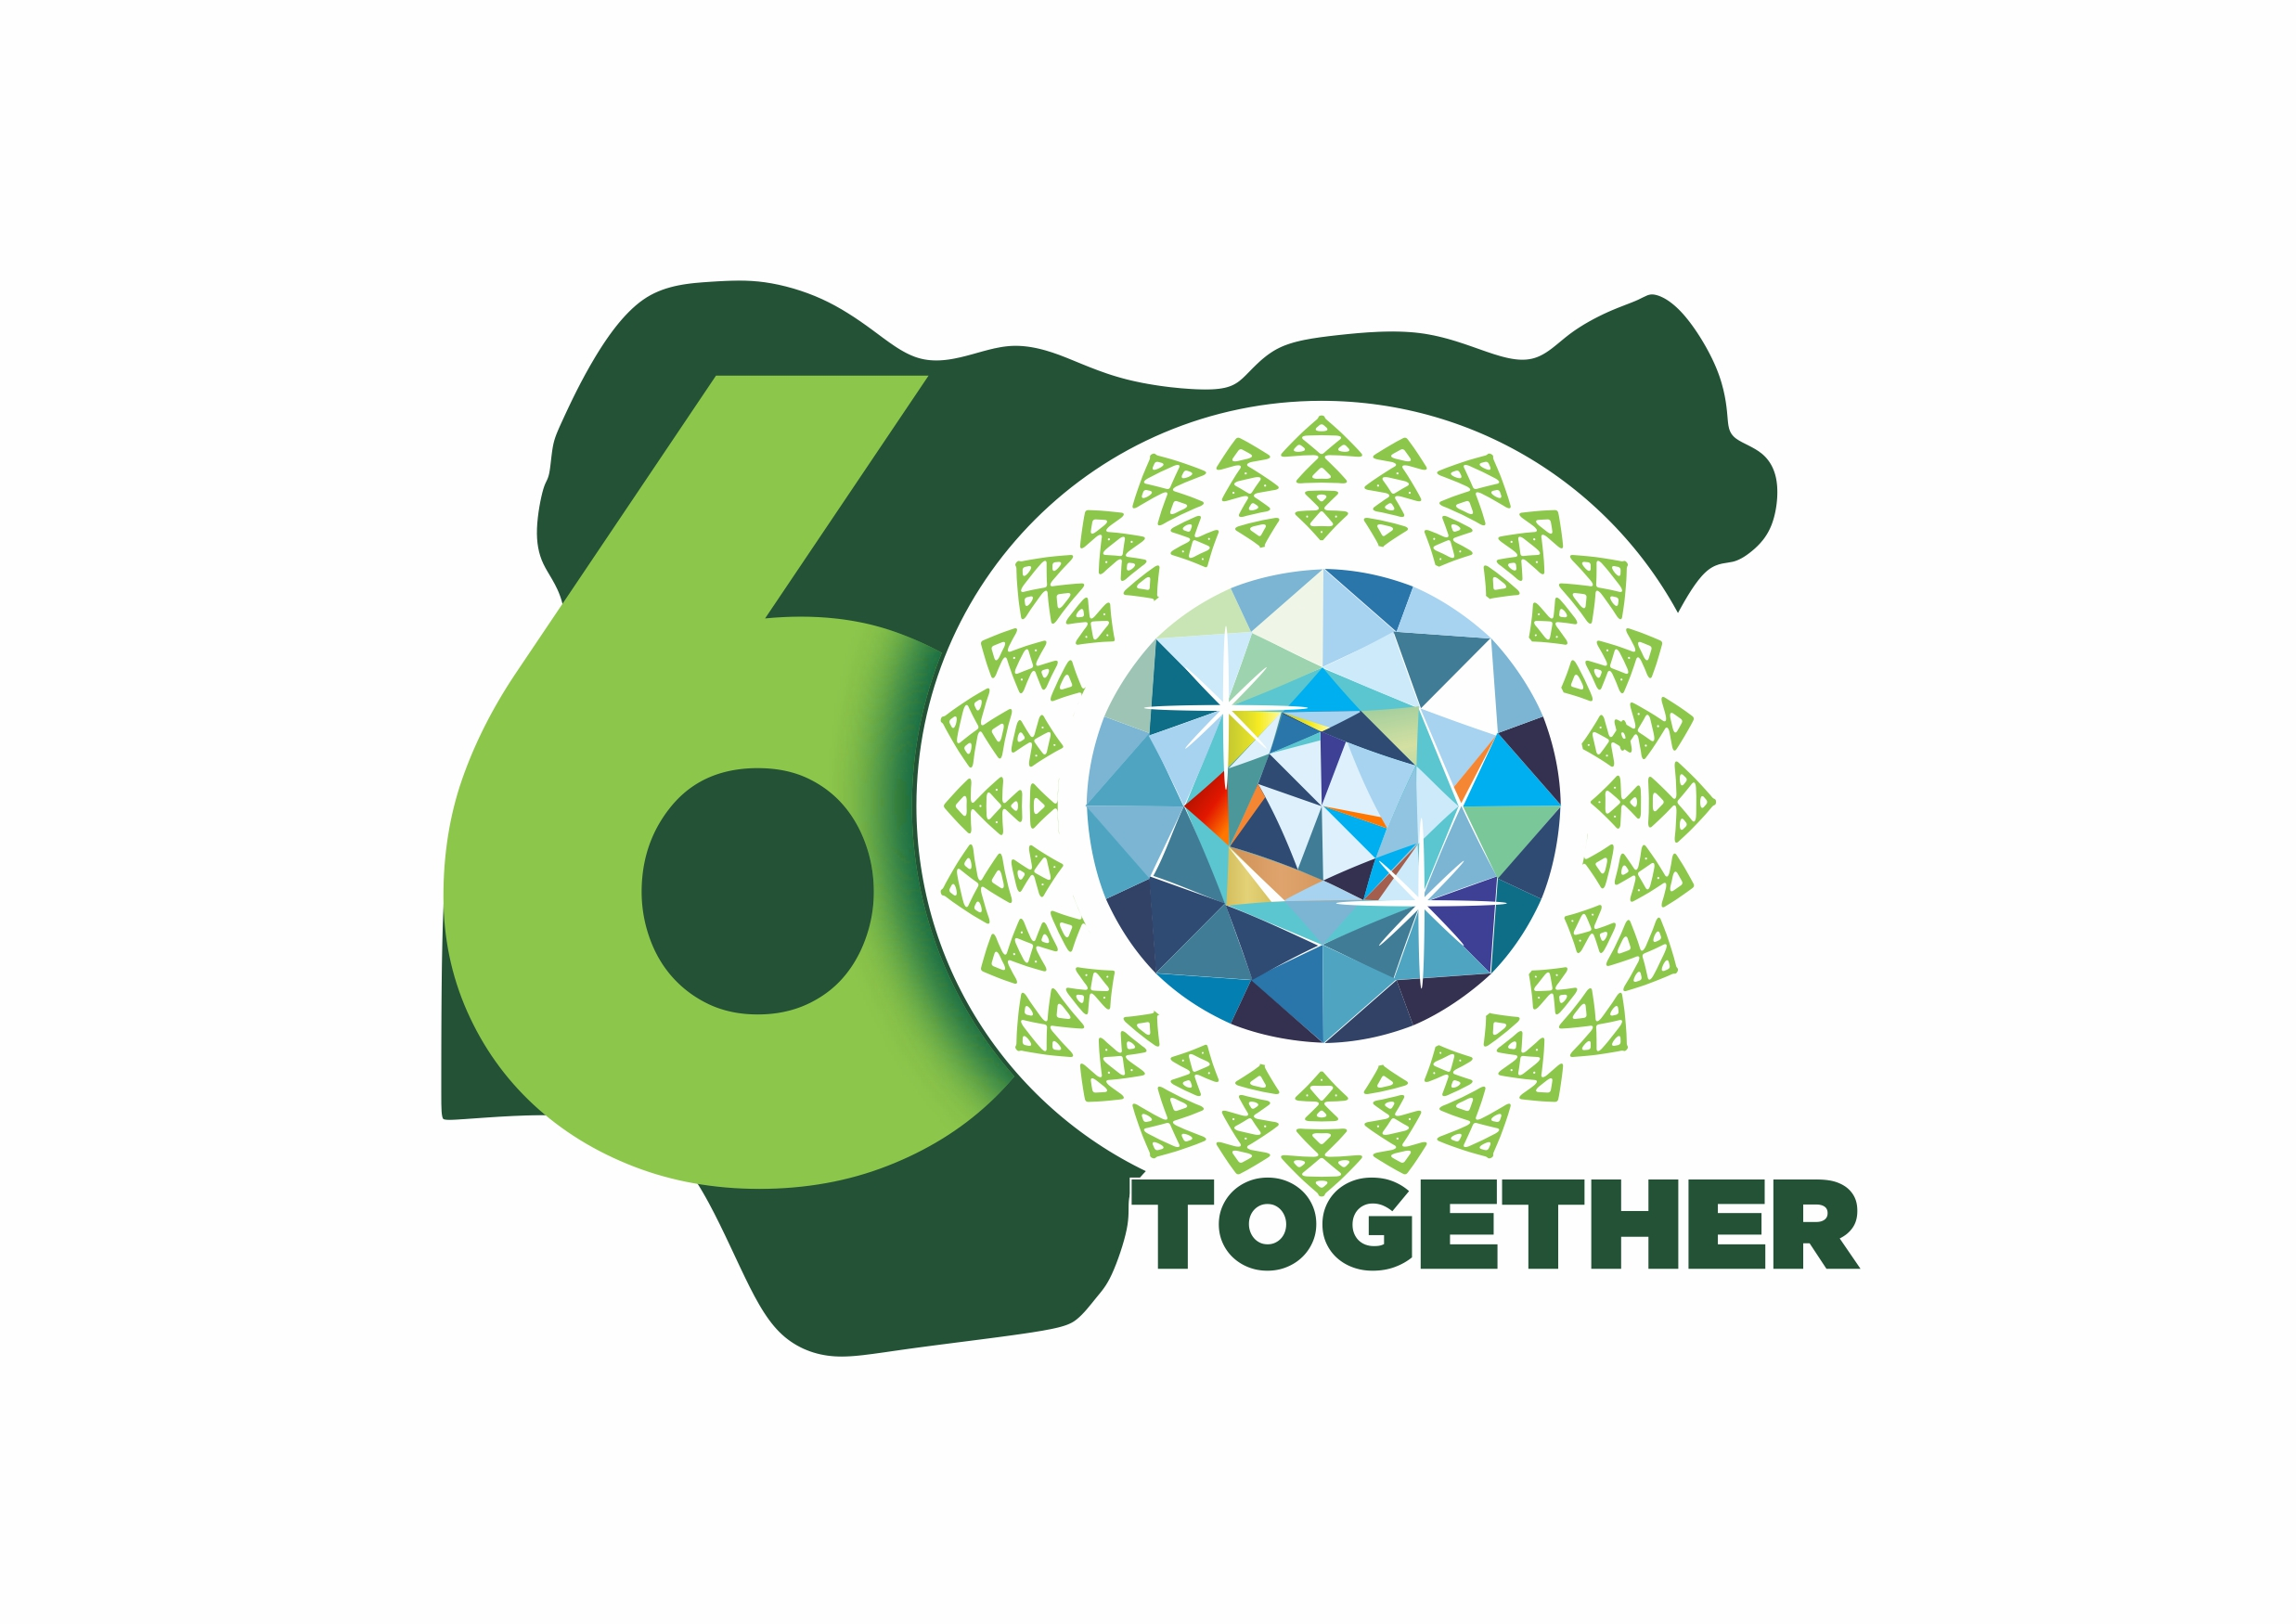 Co-creators of 'Nigeria at 60 logo' refute plagiarism peddled by naysayers